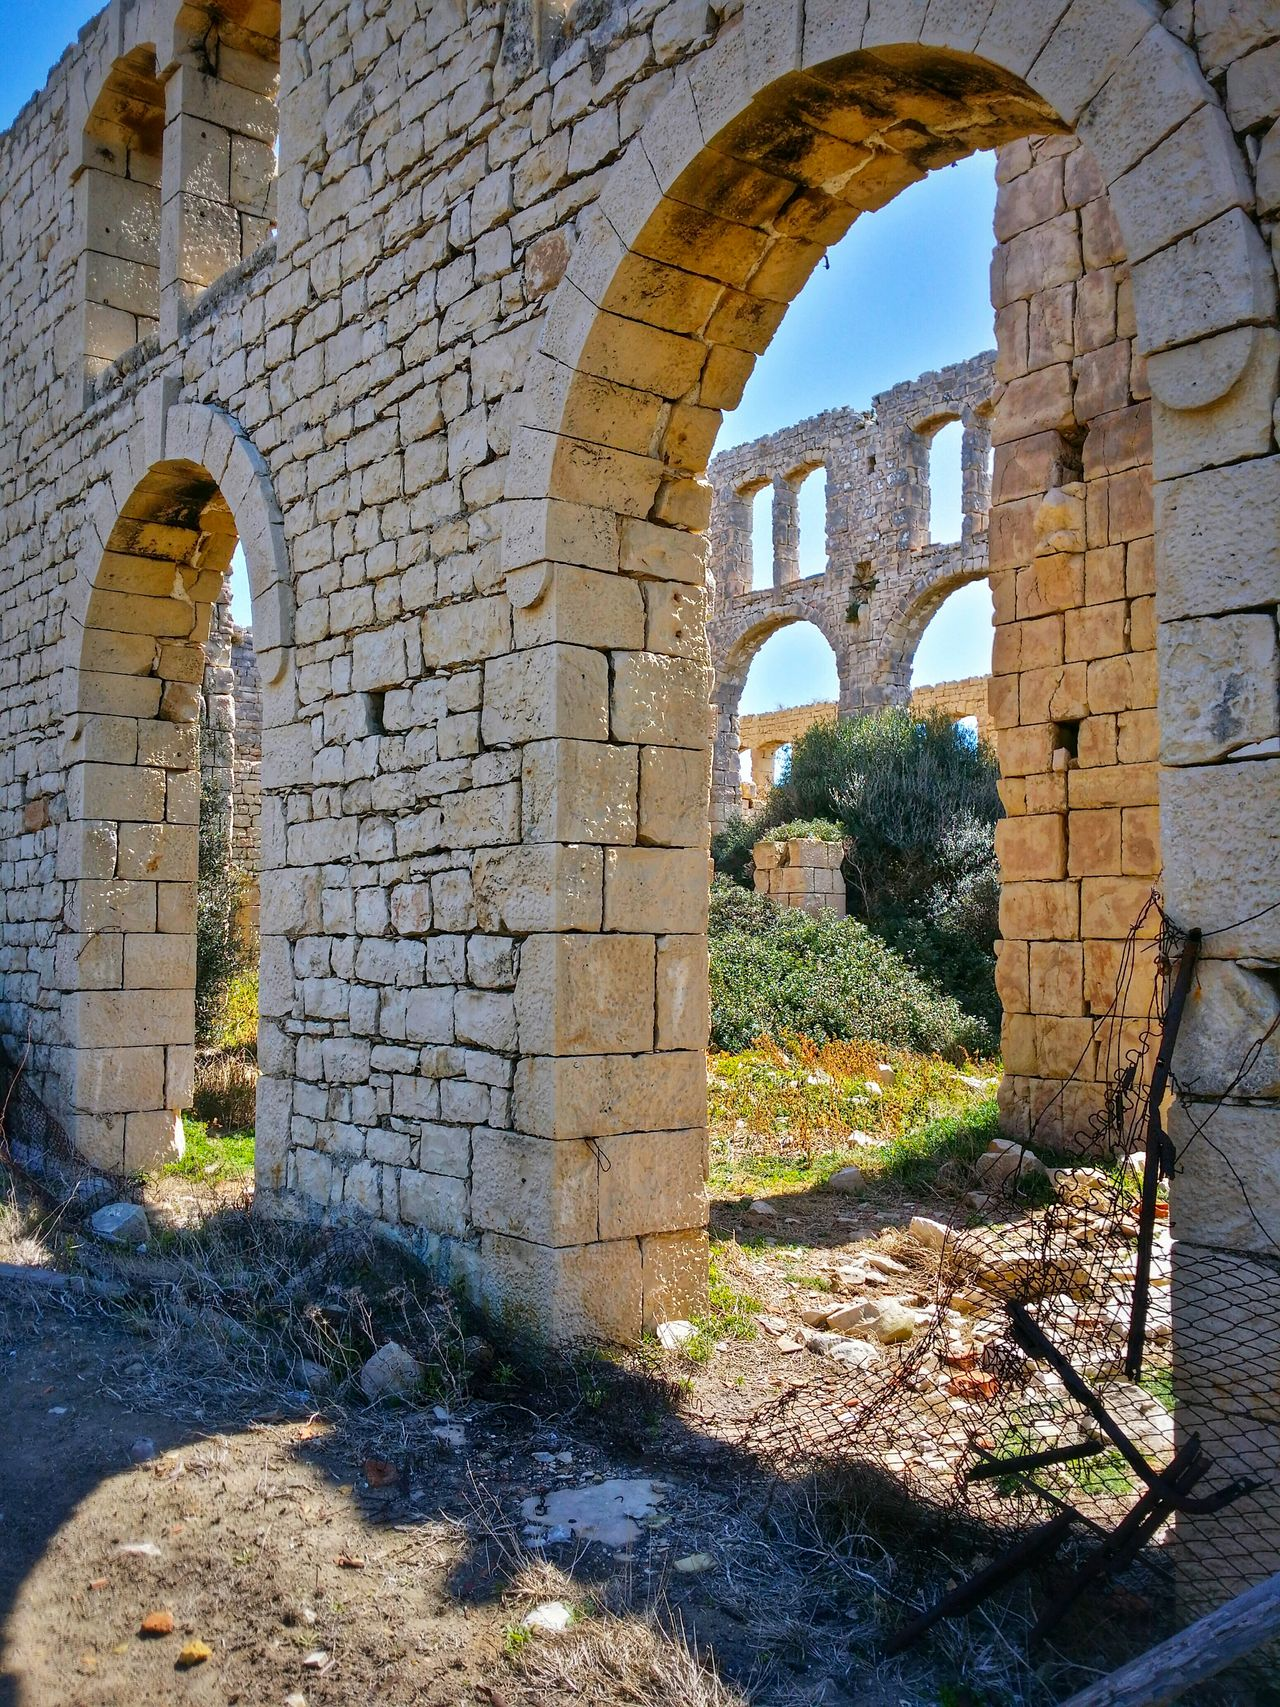 Sampieri Ragusa Sicily Italy Travel Photography Travel Voyage Traveling Mobile Photography Fine Art Architecture Early XX Century's Industrial Facilities Furnaces Ruins Long Shadows Mobile Editing